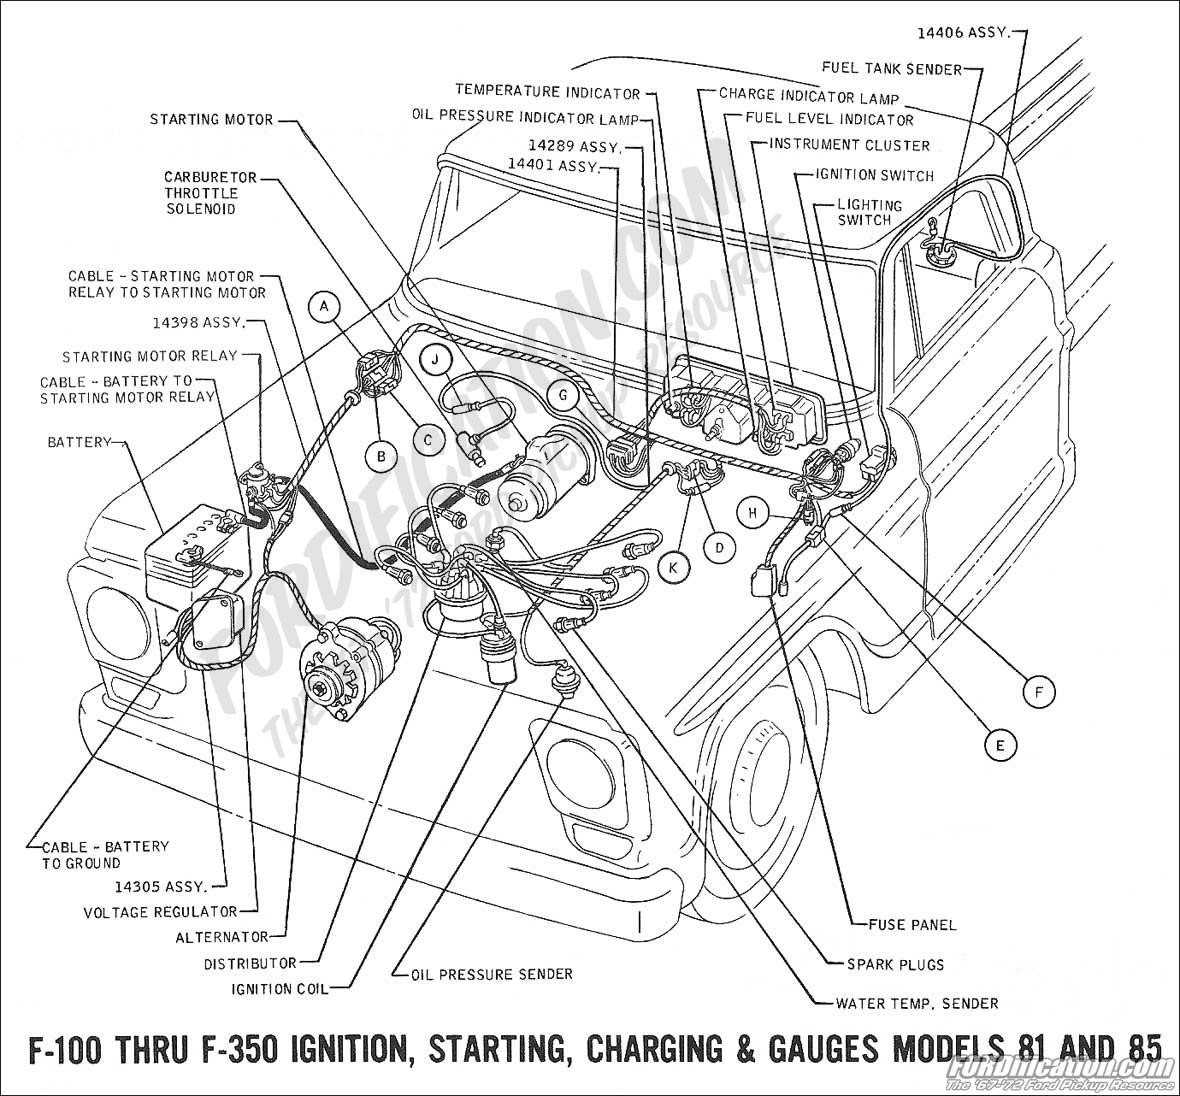 1972 Ford F100 Ke Light Wiring Diagram on 1968 mustang dash wiring diagram